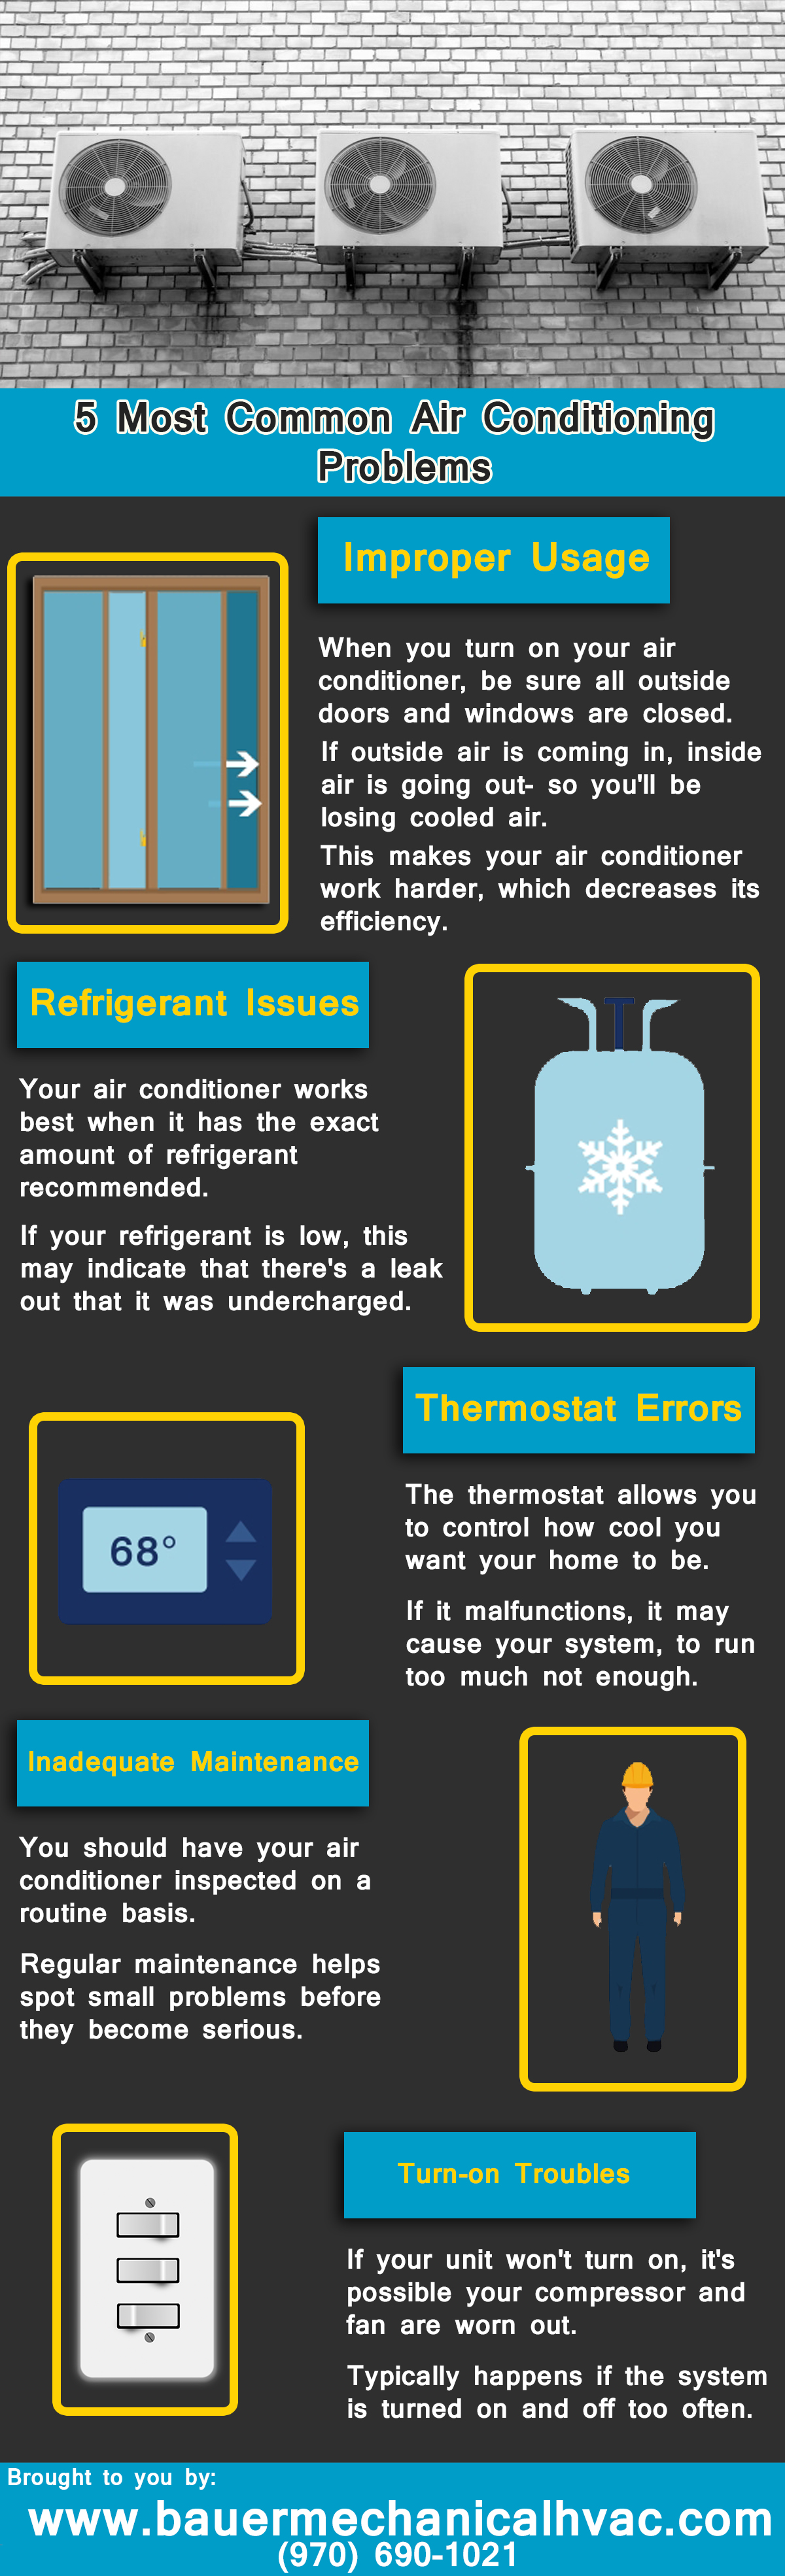 5 Most Common Air Conditioning Problems (With images